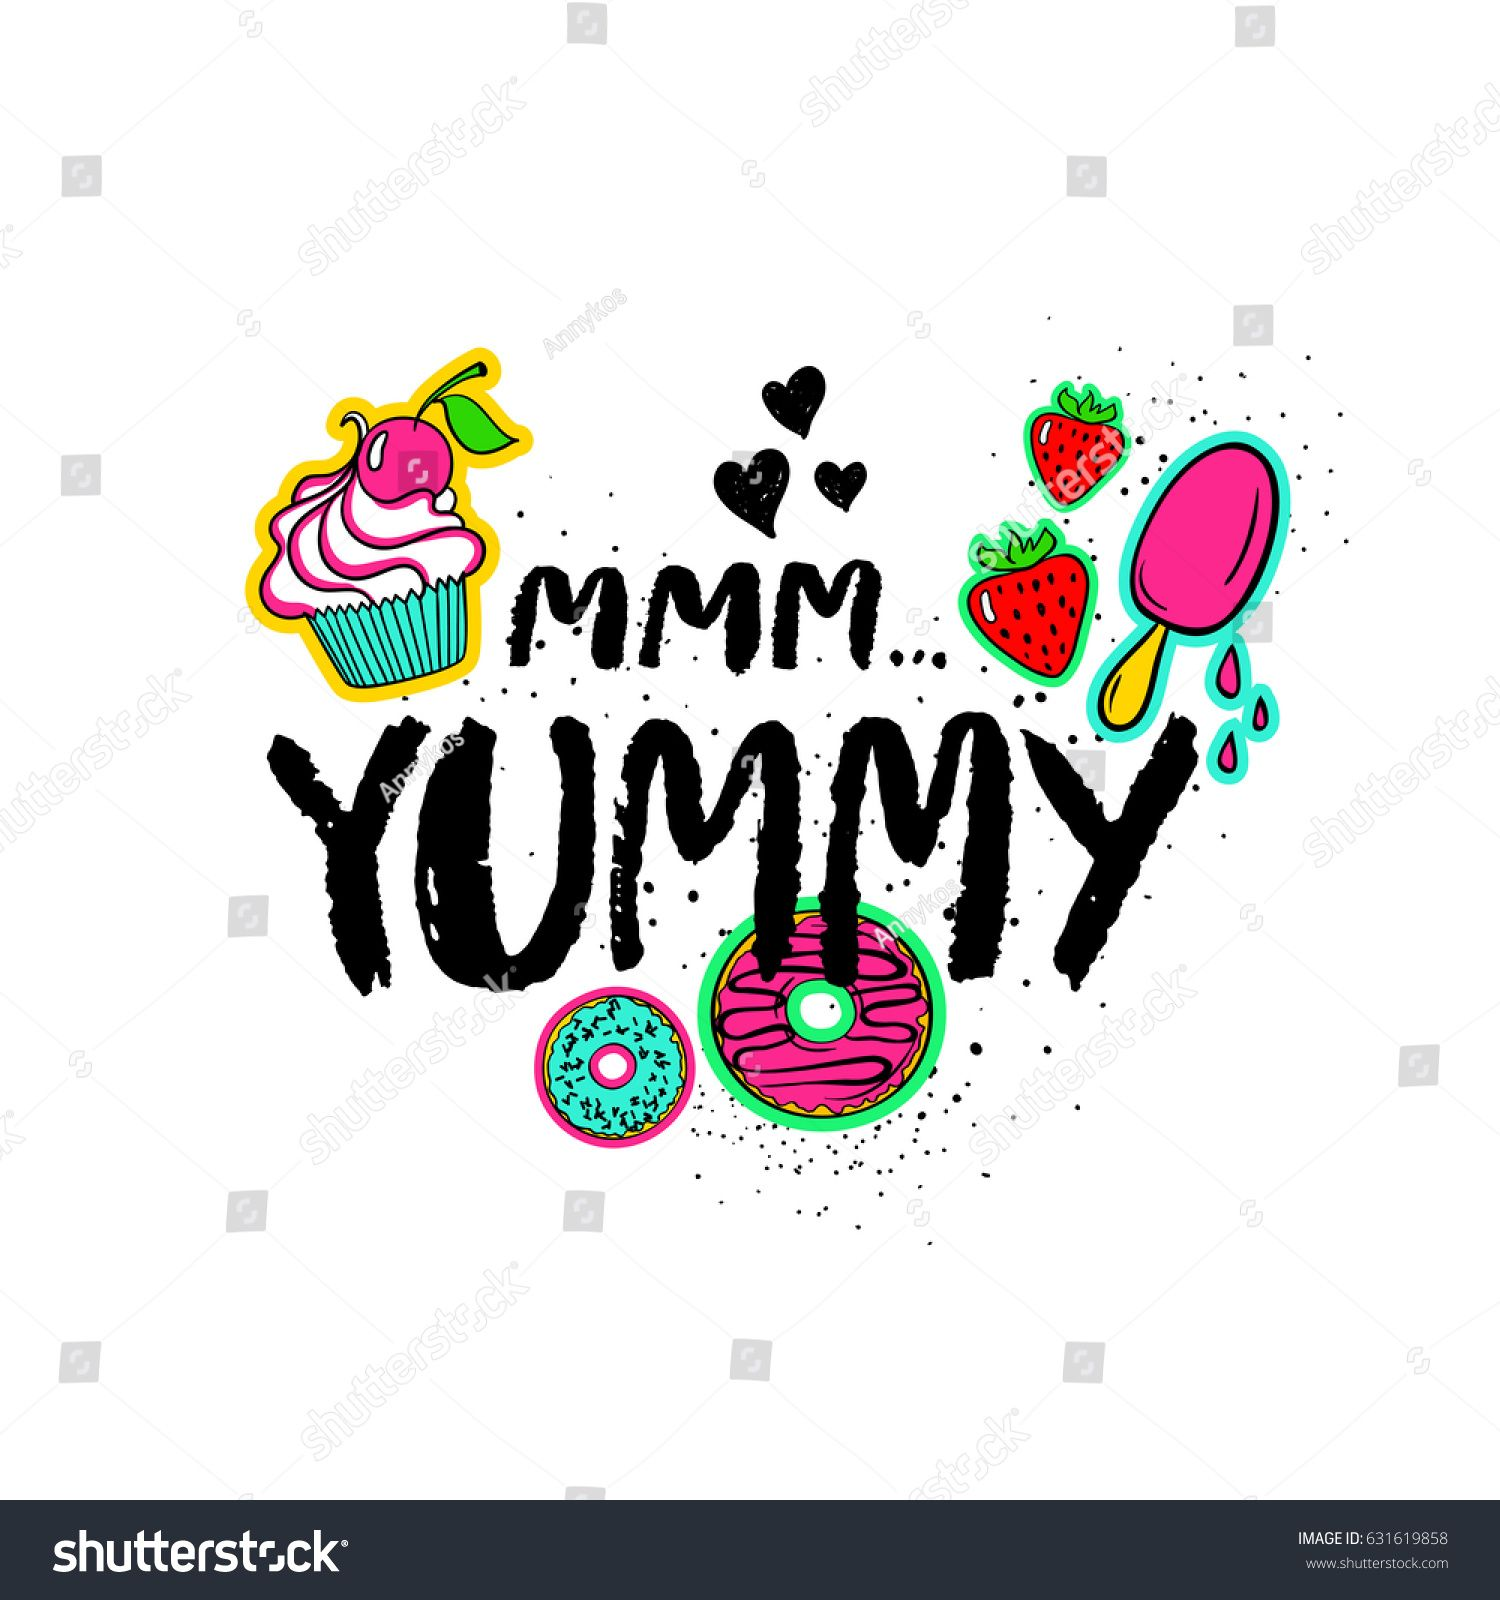 Mmm Yummy Phrase Saying With Sweets Cartoon Comic Stickers Isolated On A White Background Hand Drawn Hand Drawn Lettering Ink Lettering How To Draw Hands